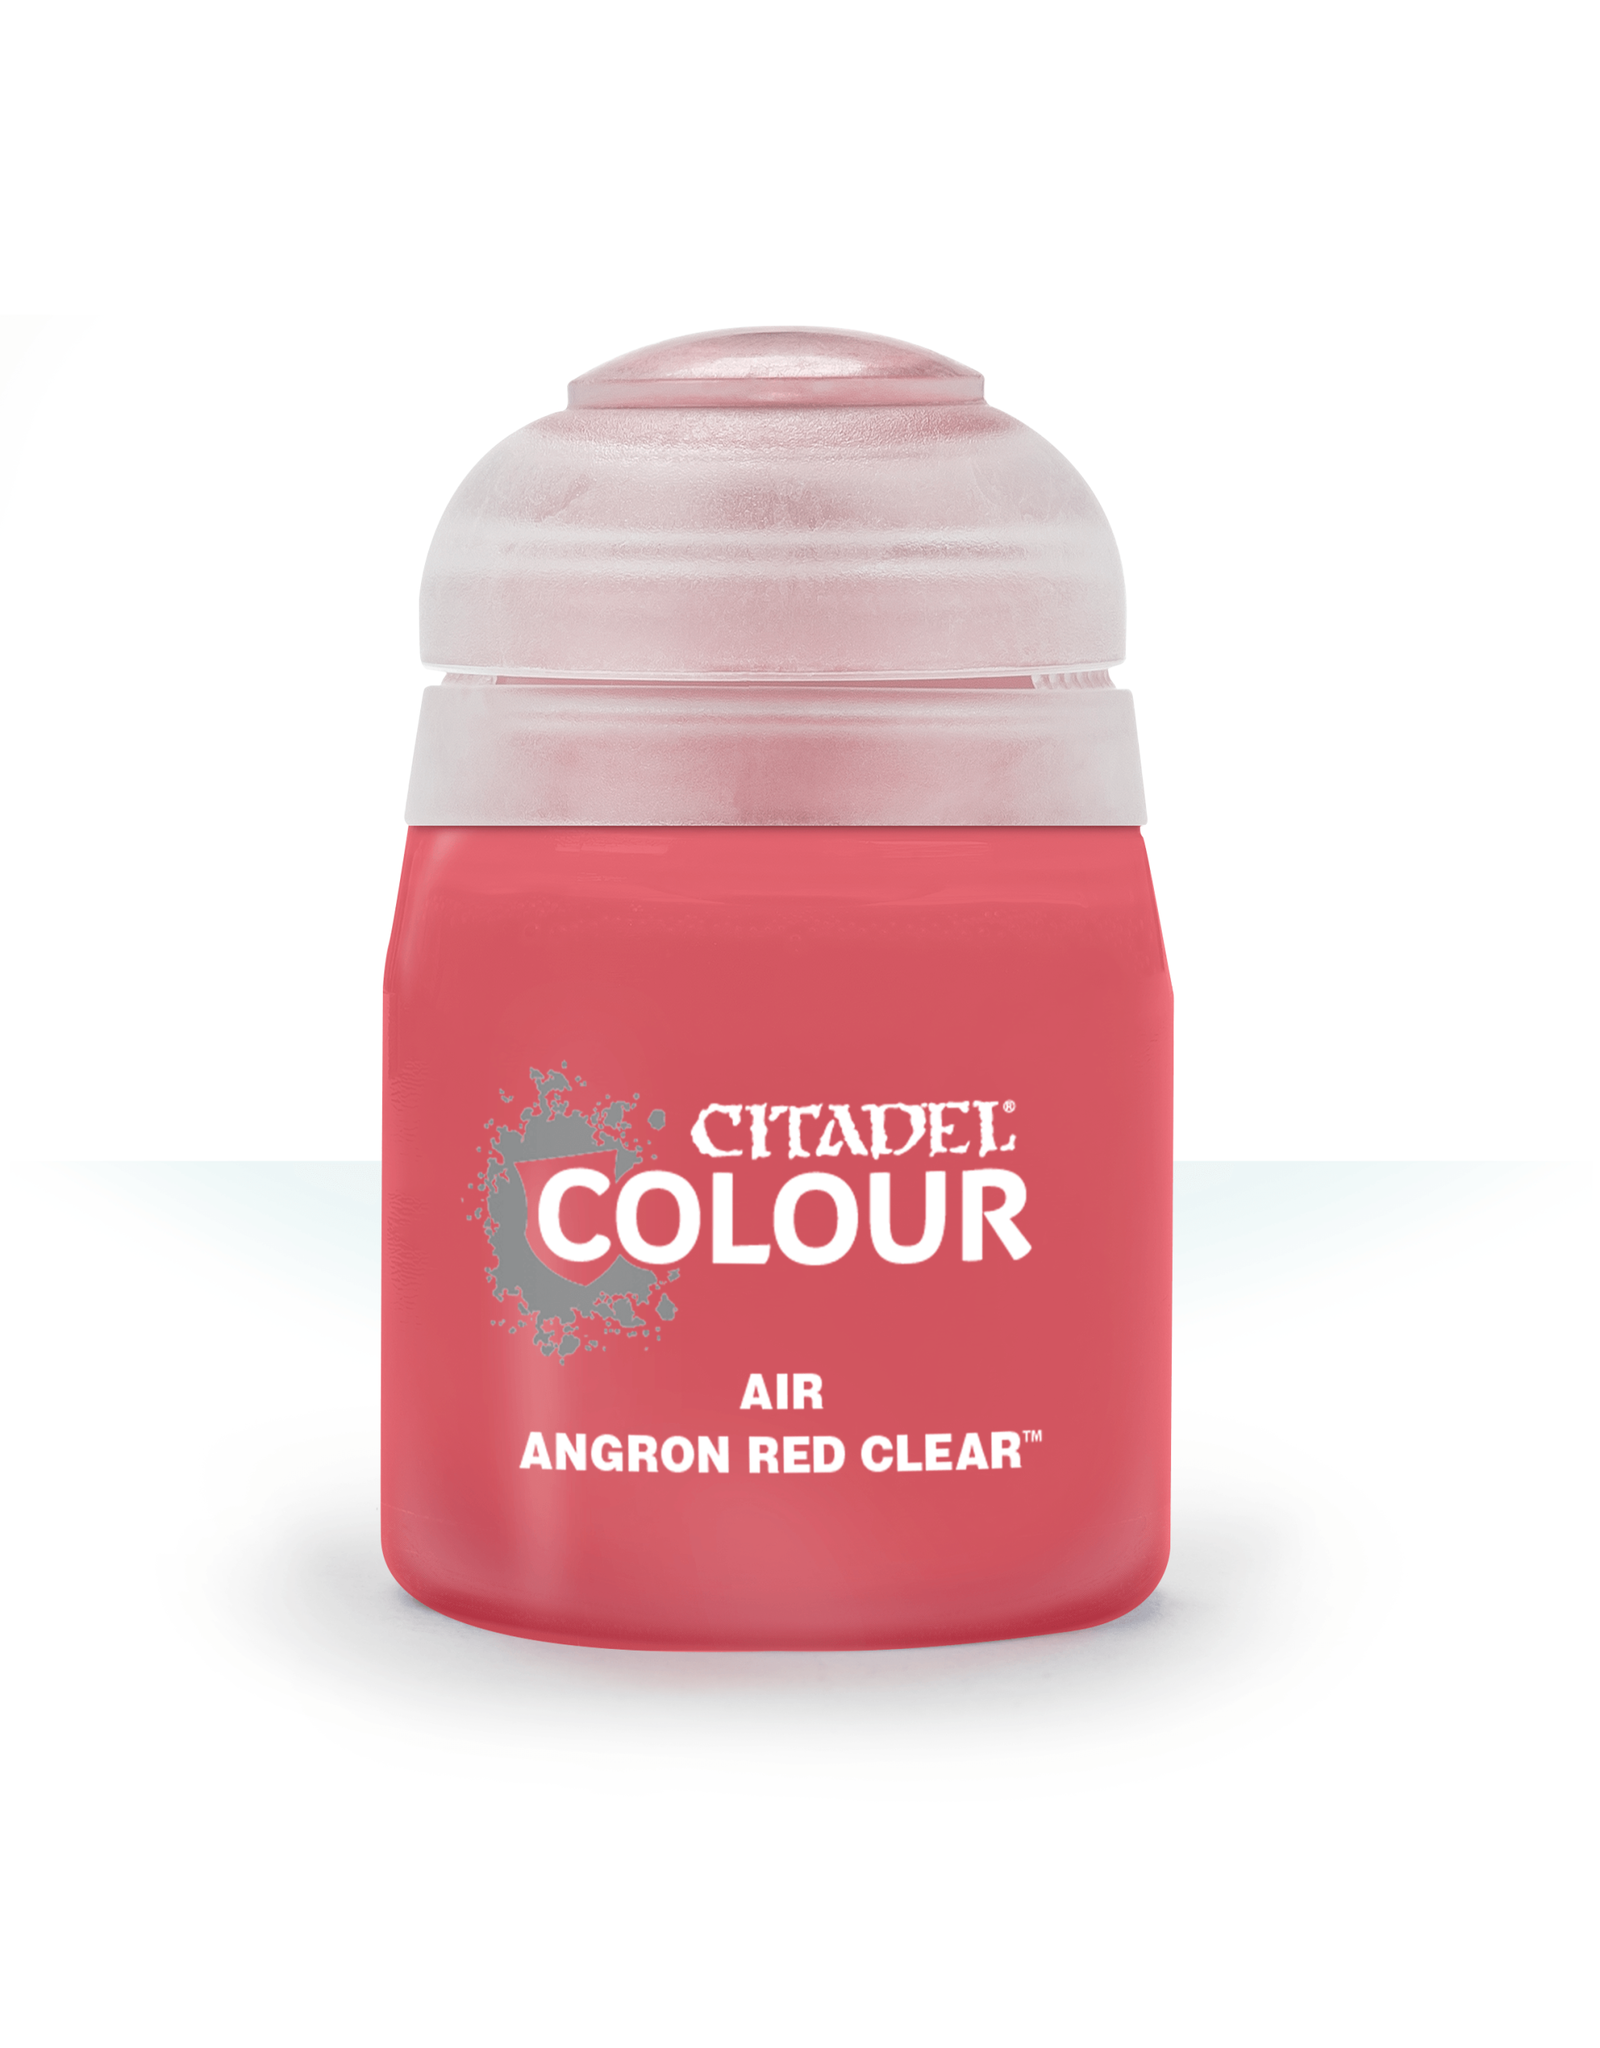 Citadel AIRANGRON RED CLEAR